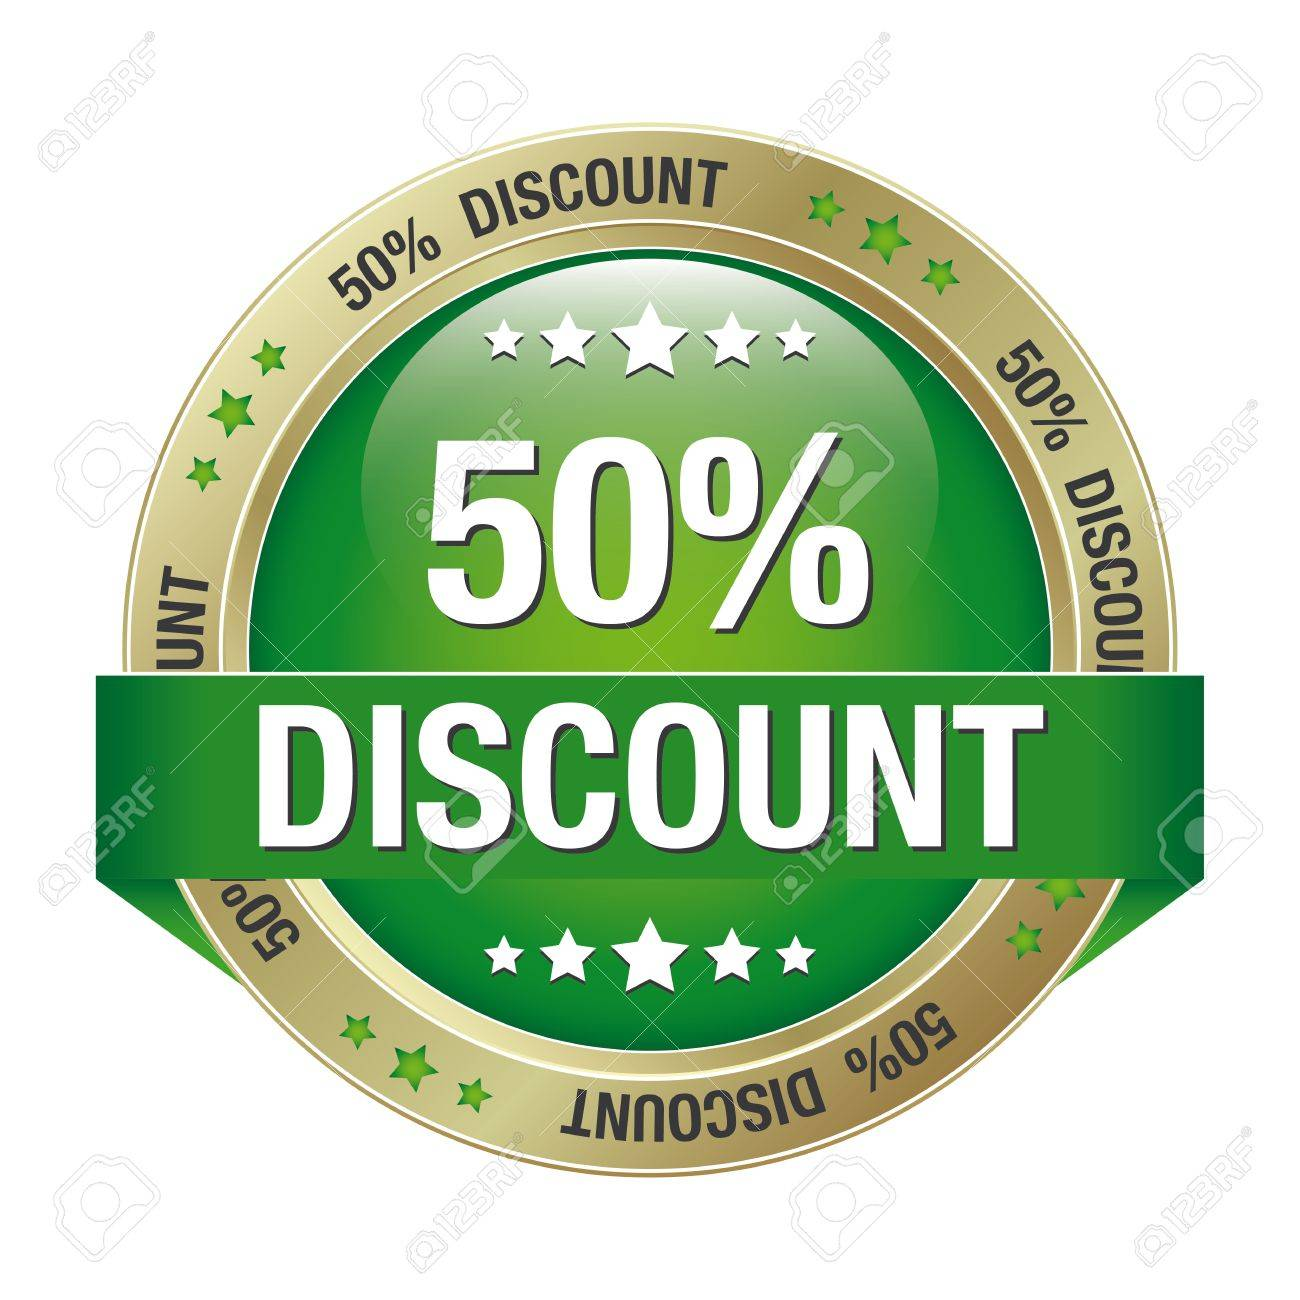 50 discount green gold button isolated background Stock Vector - 16895041